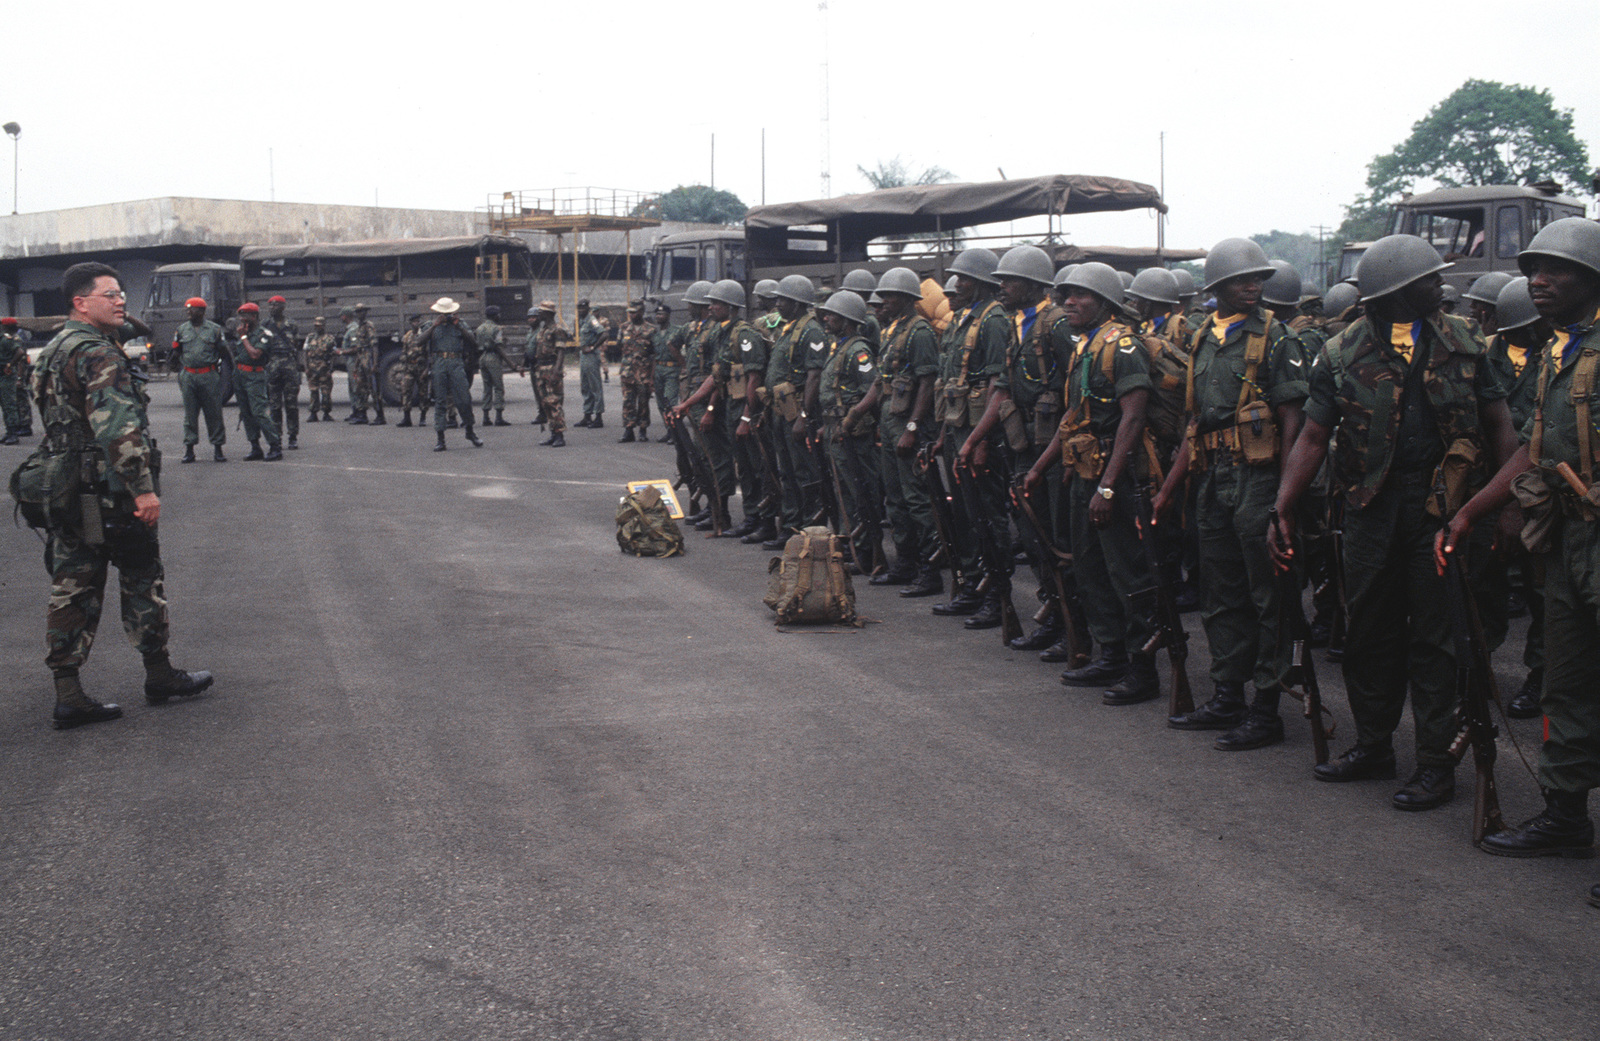 MASTER Sergeant Thomas A. Nelson (far left), from the 3rd Special Forces Group, 1ST Battalion, Fort Bragg, N.C., checks out the Economic Community Military Observation Group 13 (ECOMOG) Ghana Army troops in formation at Accra Airport Ghana. The troops are being airlifted to Robert's International Airport, Liberia for a six month deployment on U.S. military aircraft participating in Operation Assured Lift, a 17- day United States airlift and support mission assisting the West African states deploying more than 1100 troops to Liberia as part of the region's ongoing peacekeeping force